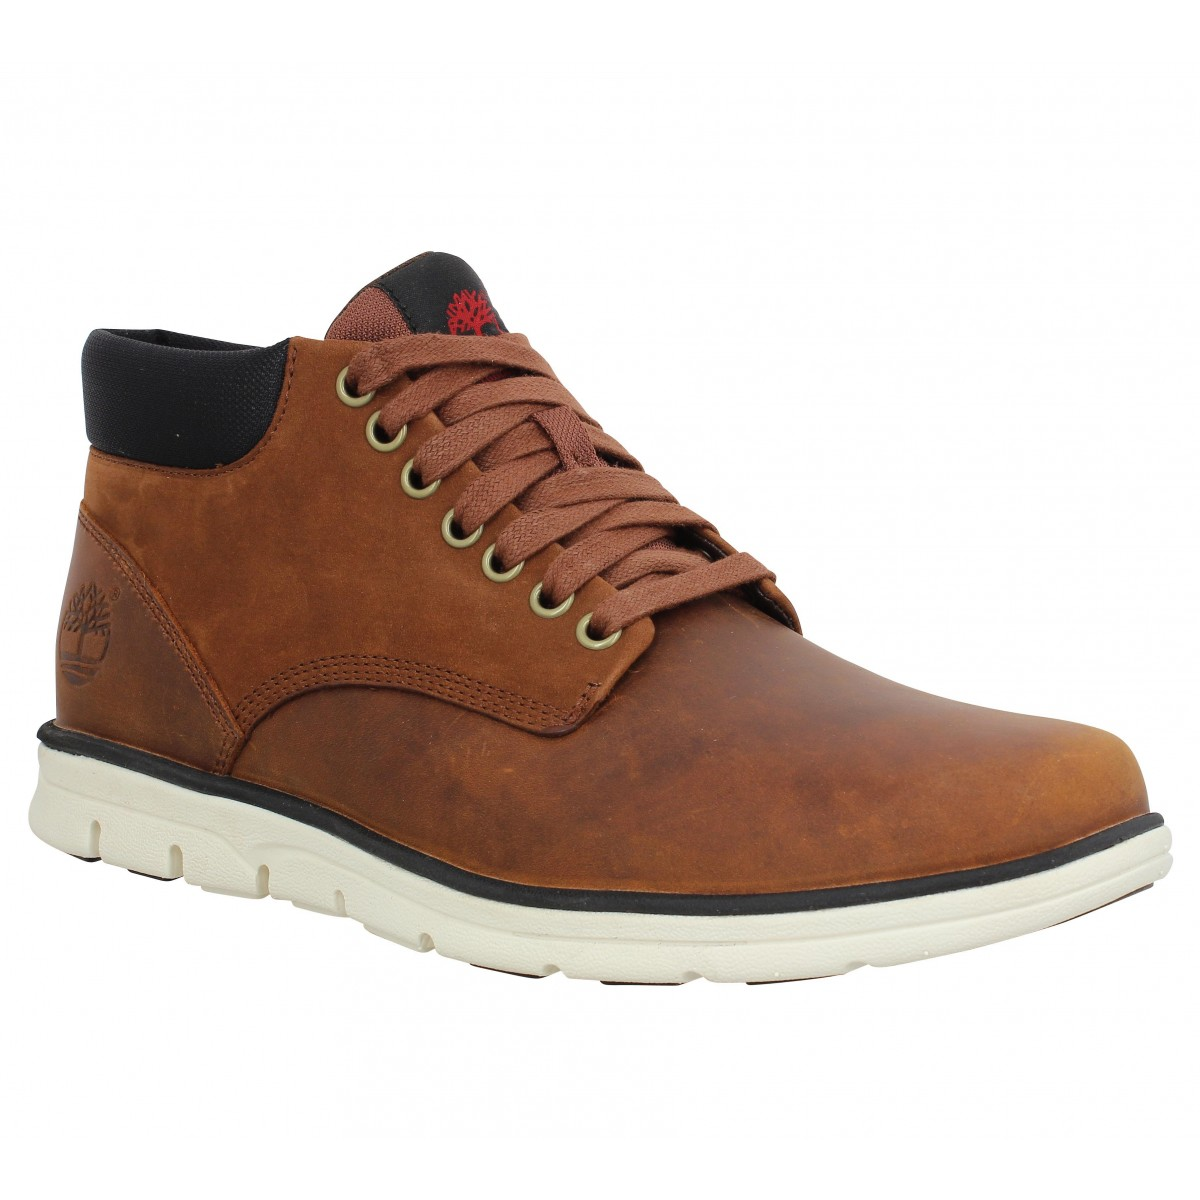 chaussure homme timberland cuir basse